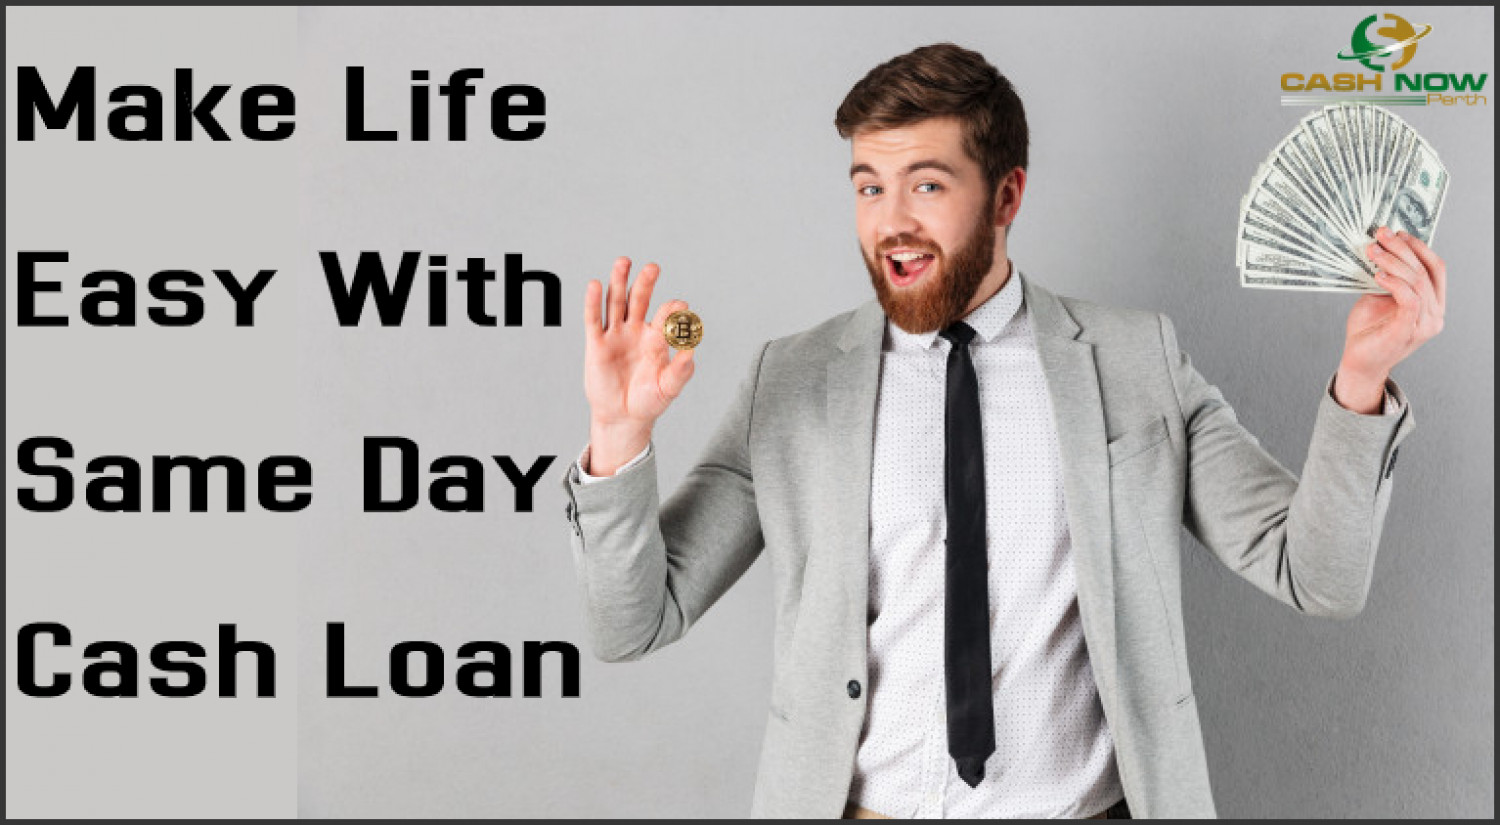 Make Life Easy With Same Day Cash Loan Infographic